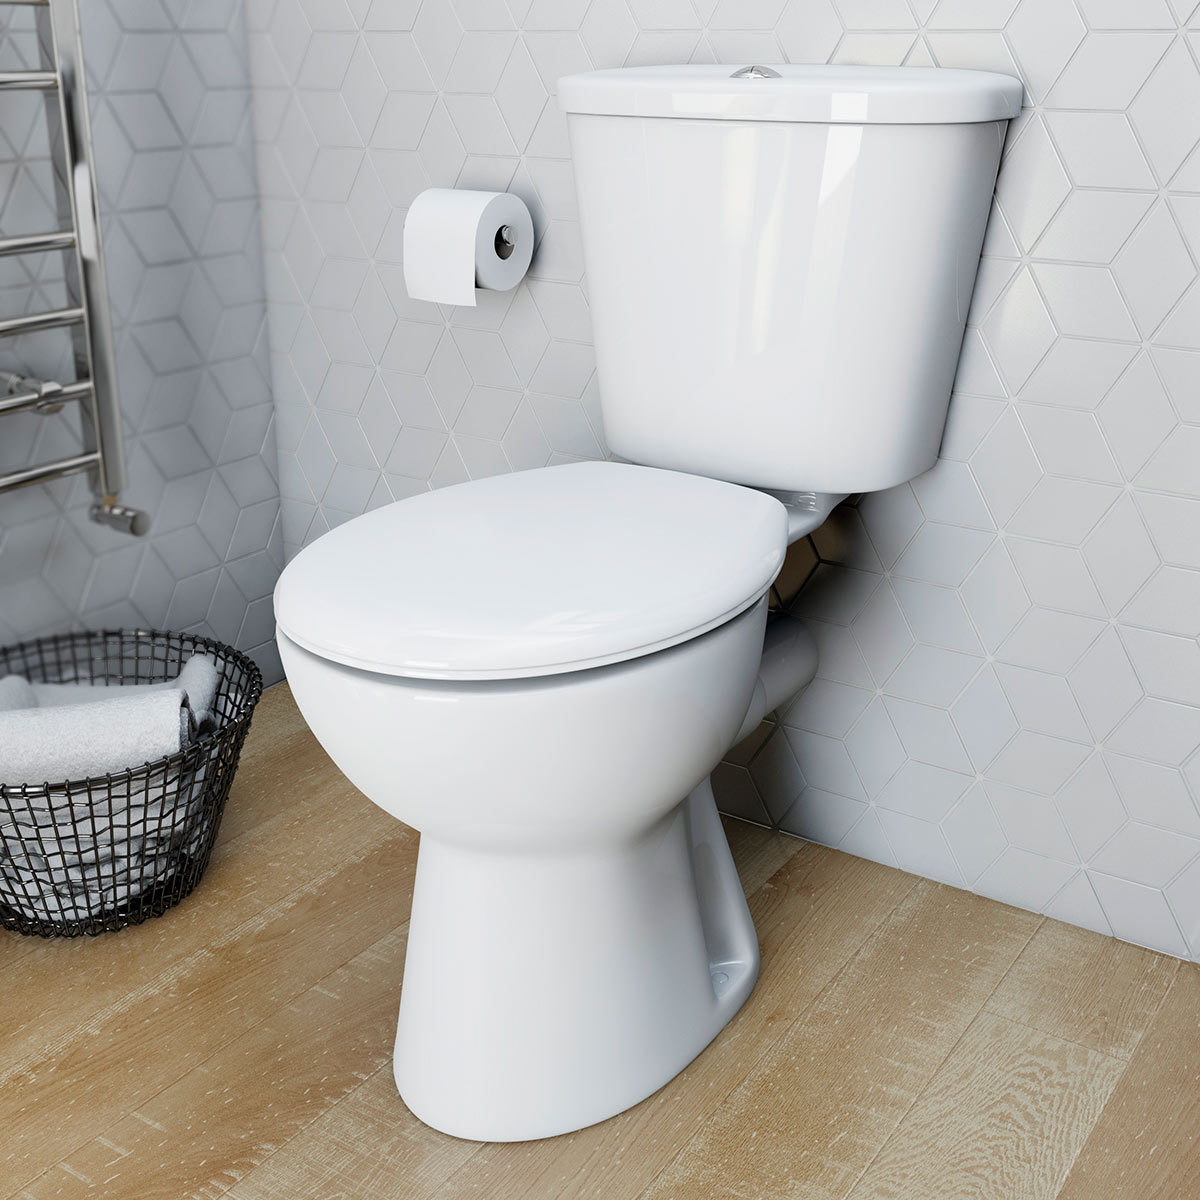 Simple universal thermoplast toilet seat